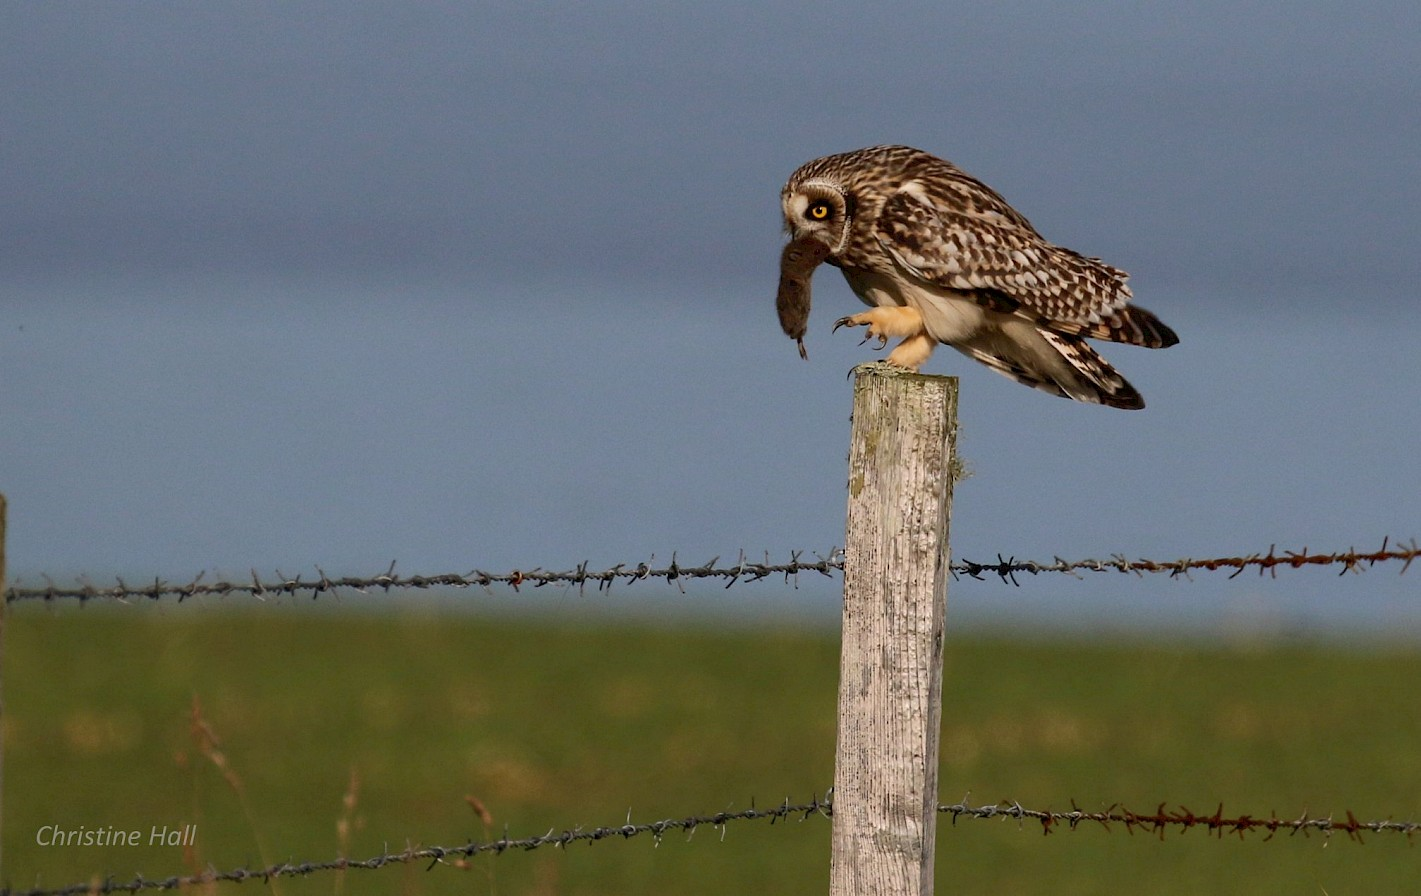 Short-eared owl with its catch in Eday - image by Christine Hall